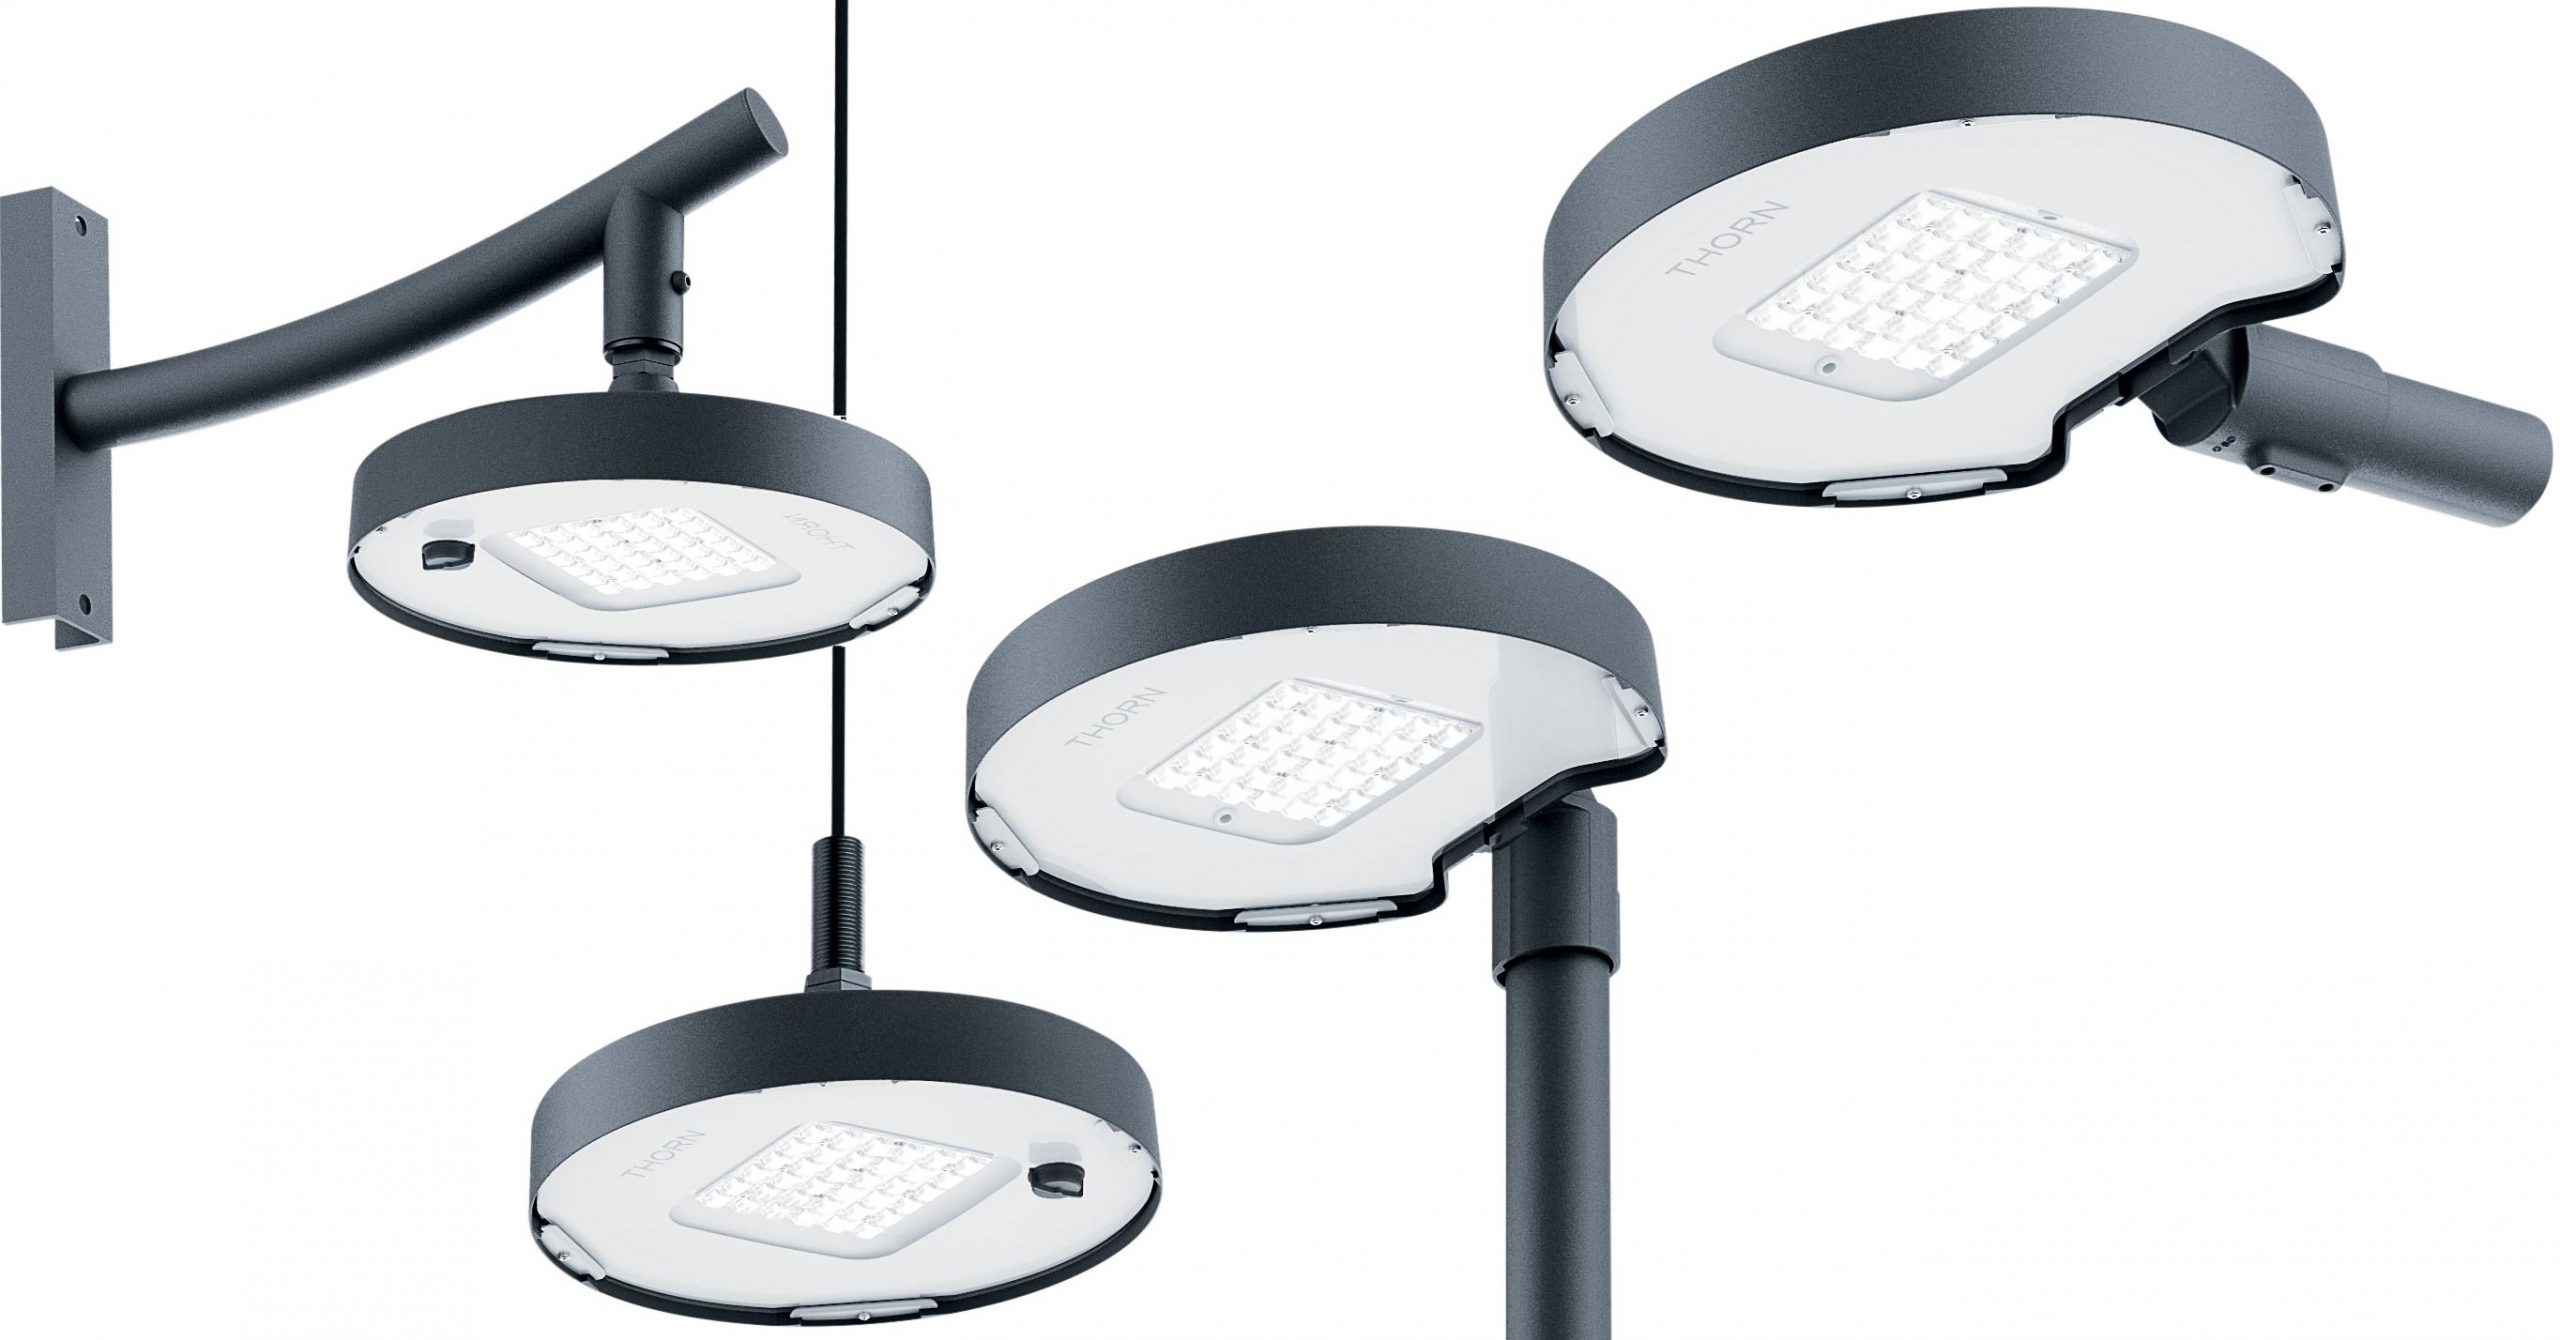 New Thorn urban lighting with variable light distribution technology